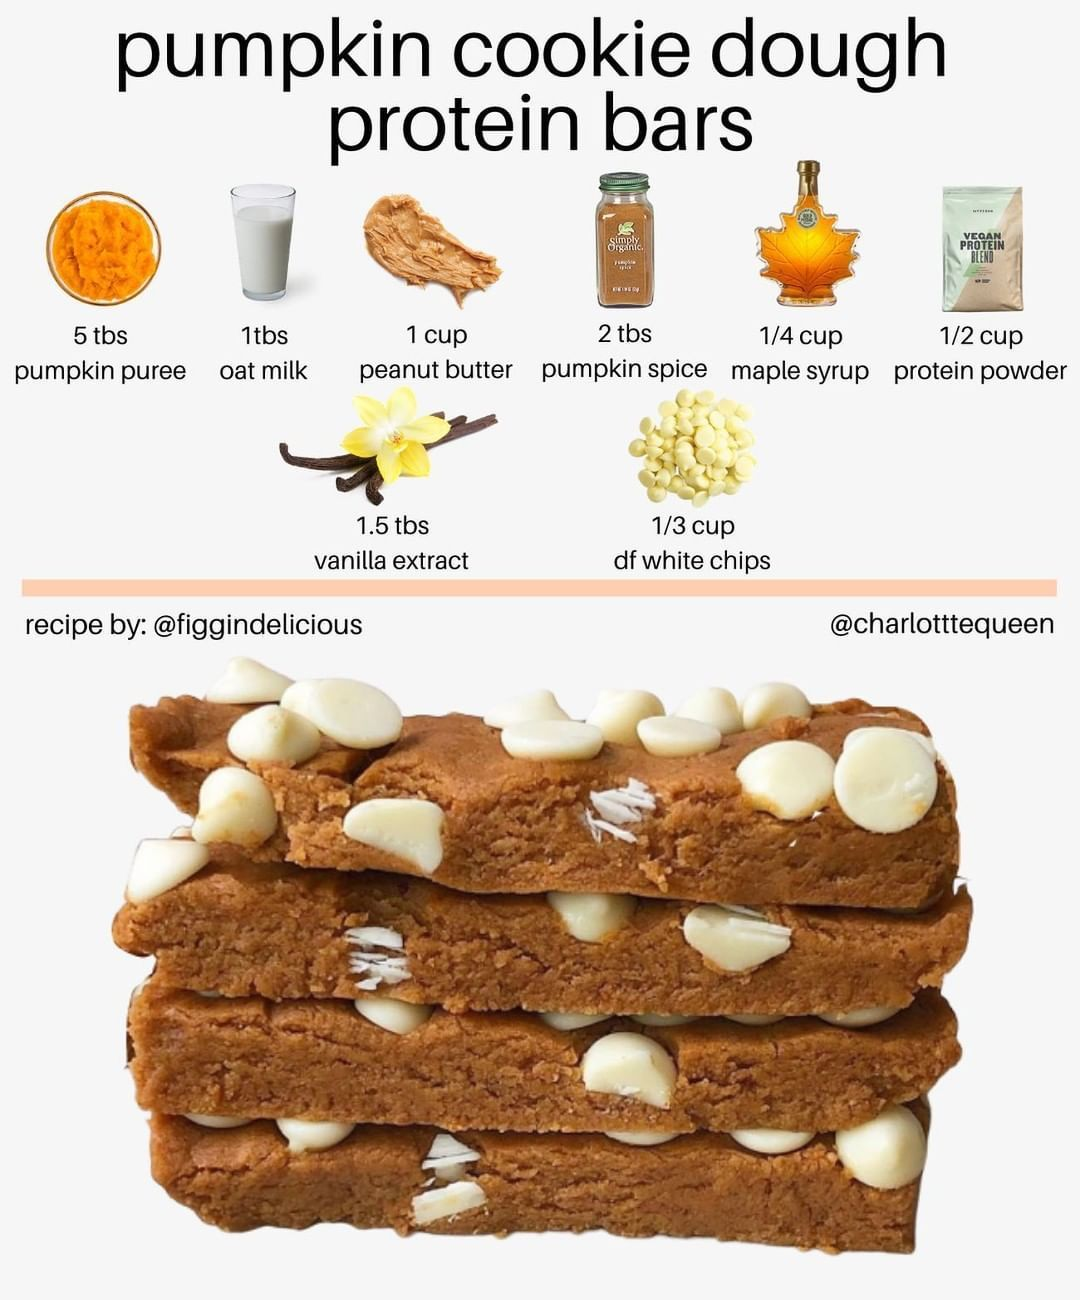 """Vegan Fitness & Nutrition Info on Instagram: """"Thanks to @charlotttequeen  PUMPKIN SPICE COOKIE DOUGH PROTEIN BARS  ⠀ ⠀ How. Good. Do. These. Look. � October May be over, but this…"""""""